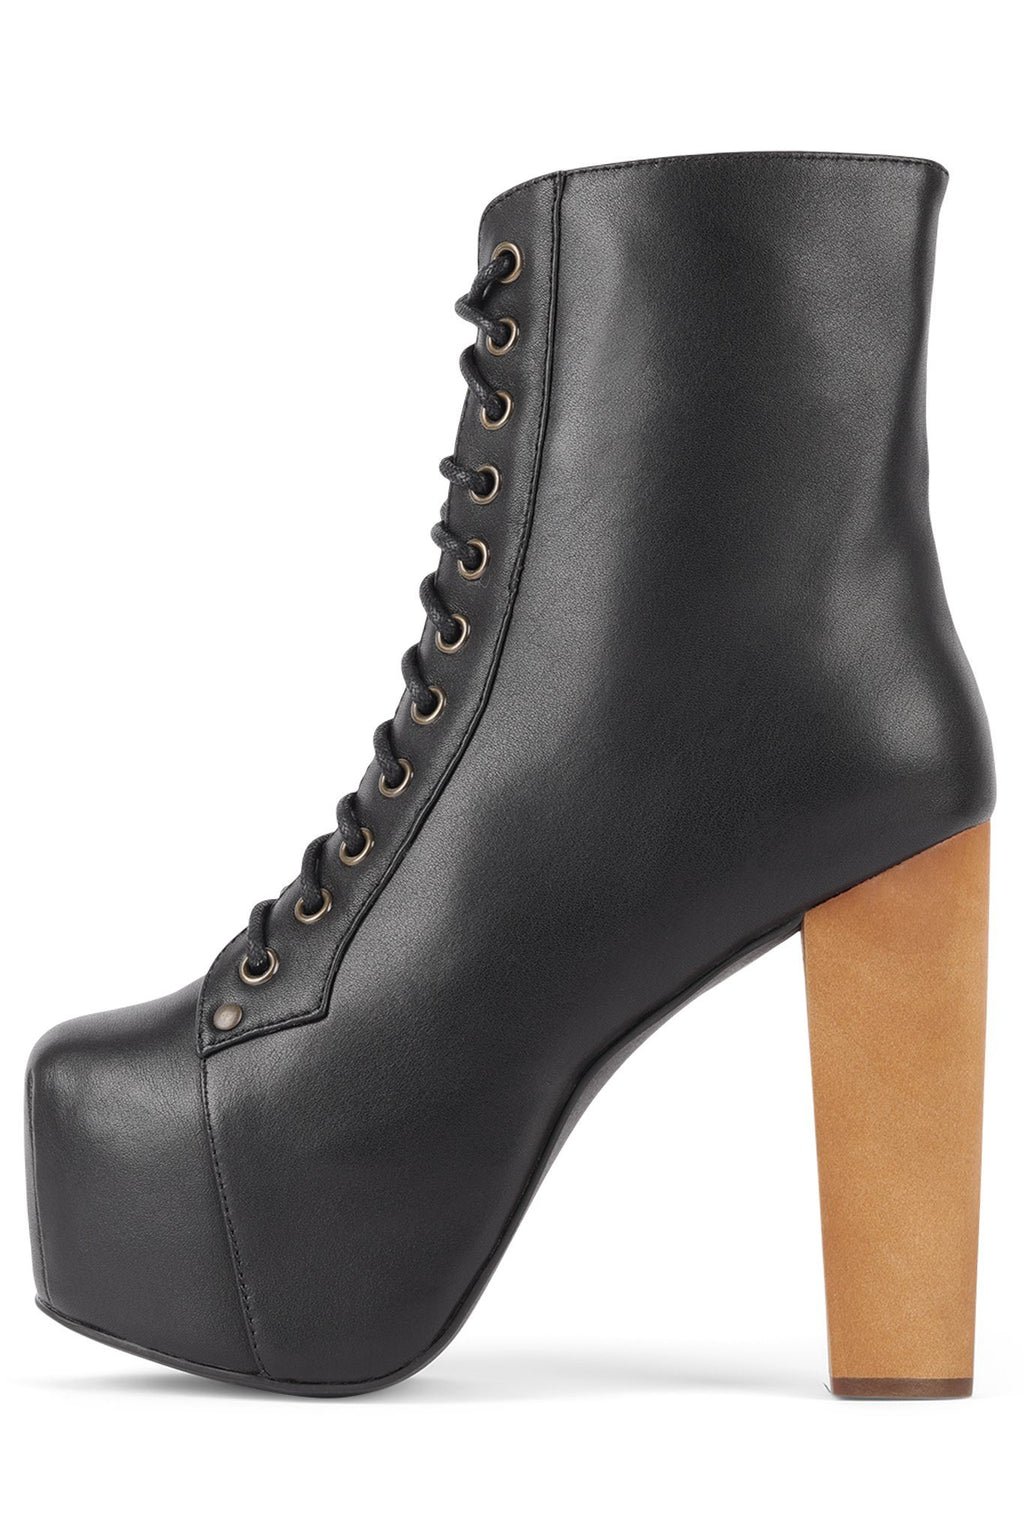 LITA-MD Mid-Calf Boot HS Black 6